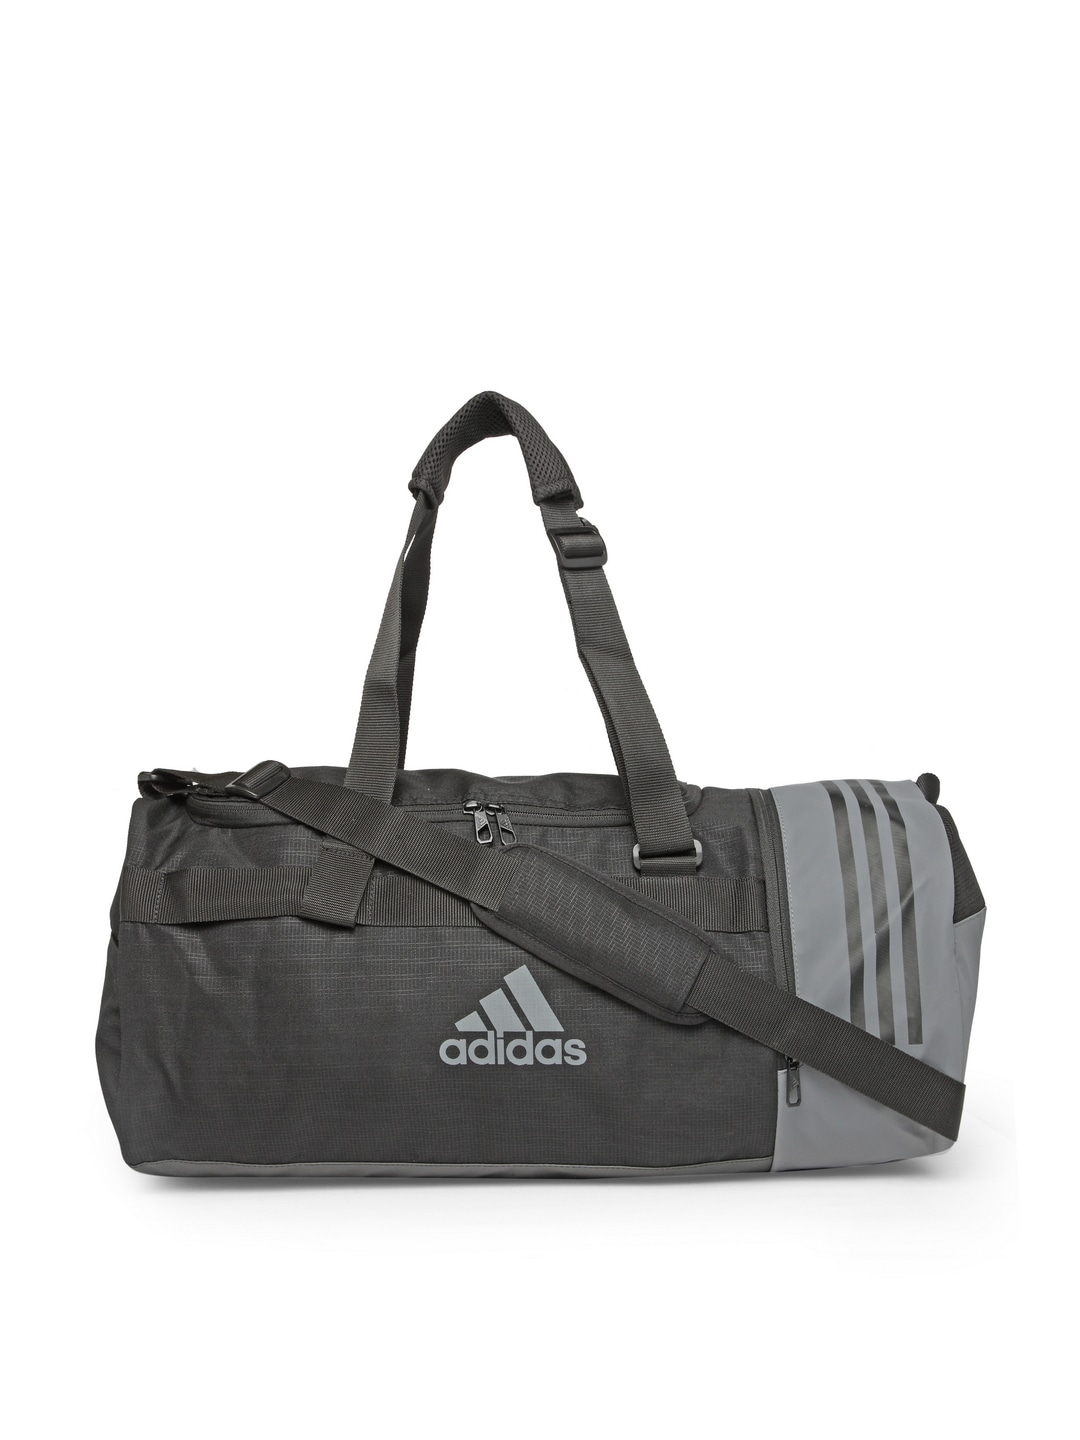 10b1e6bf78 Adidas Gym Bags - Buy Adidas Gym Bags online in India